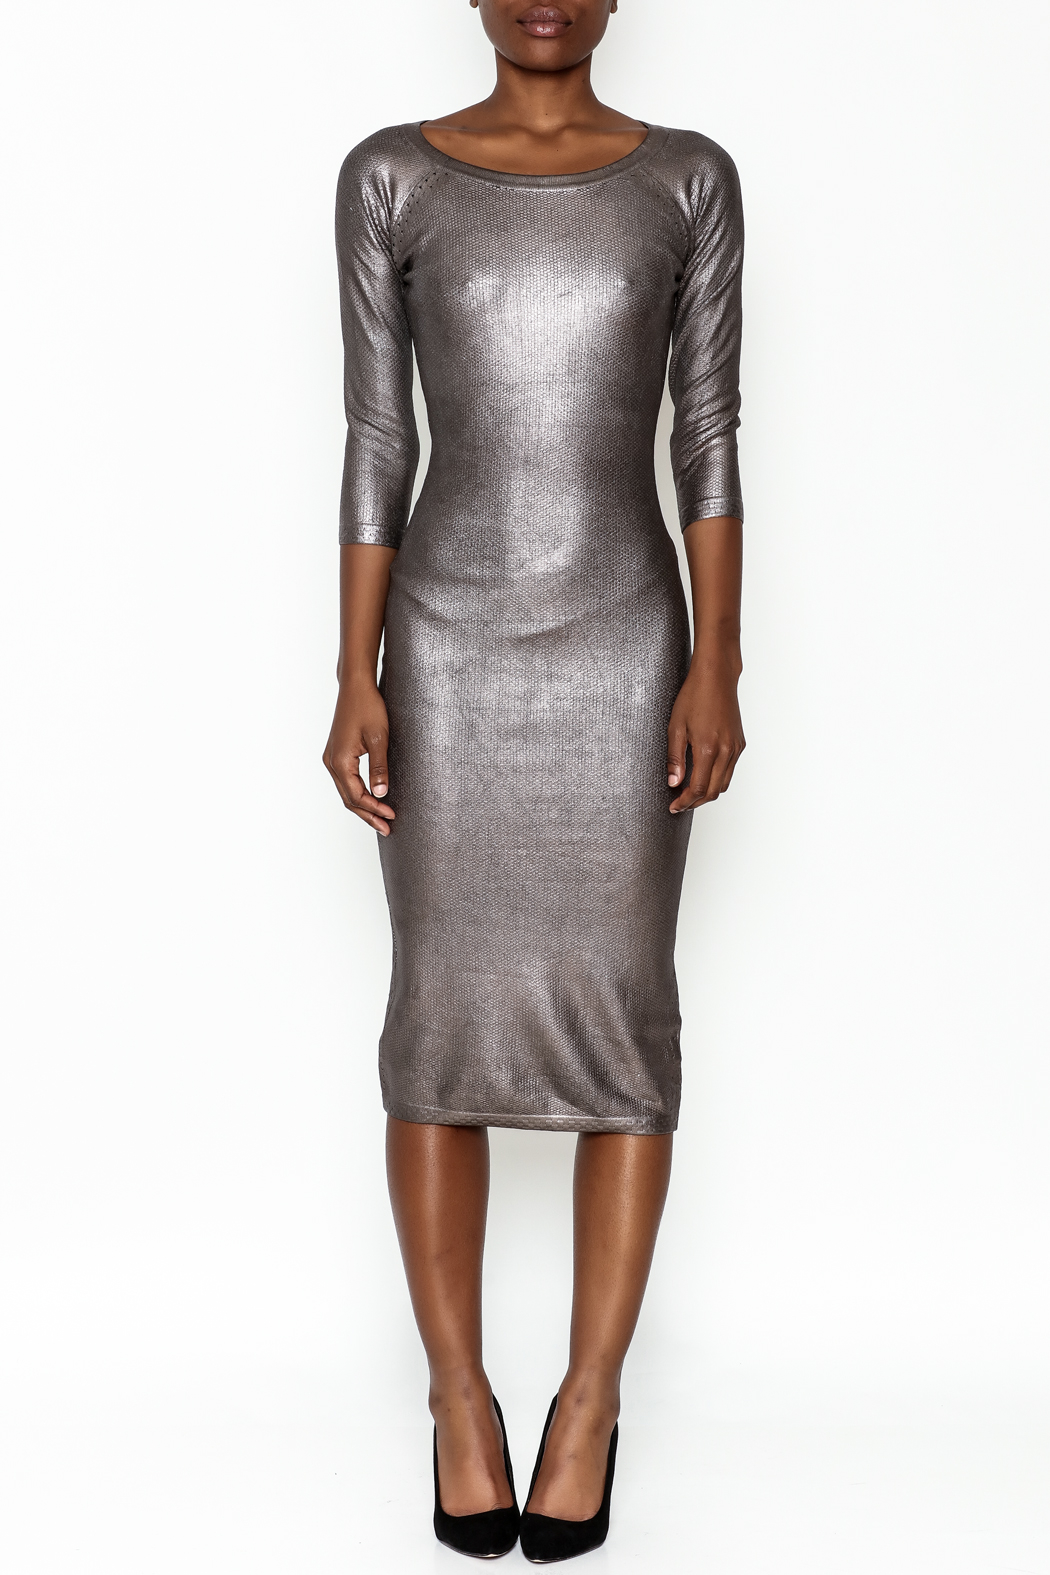 Wow Couture Gilded Bodycon Dress - Front Full Image